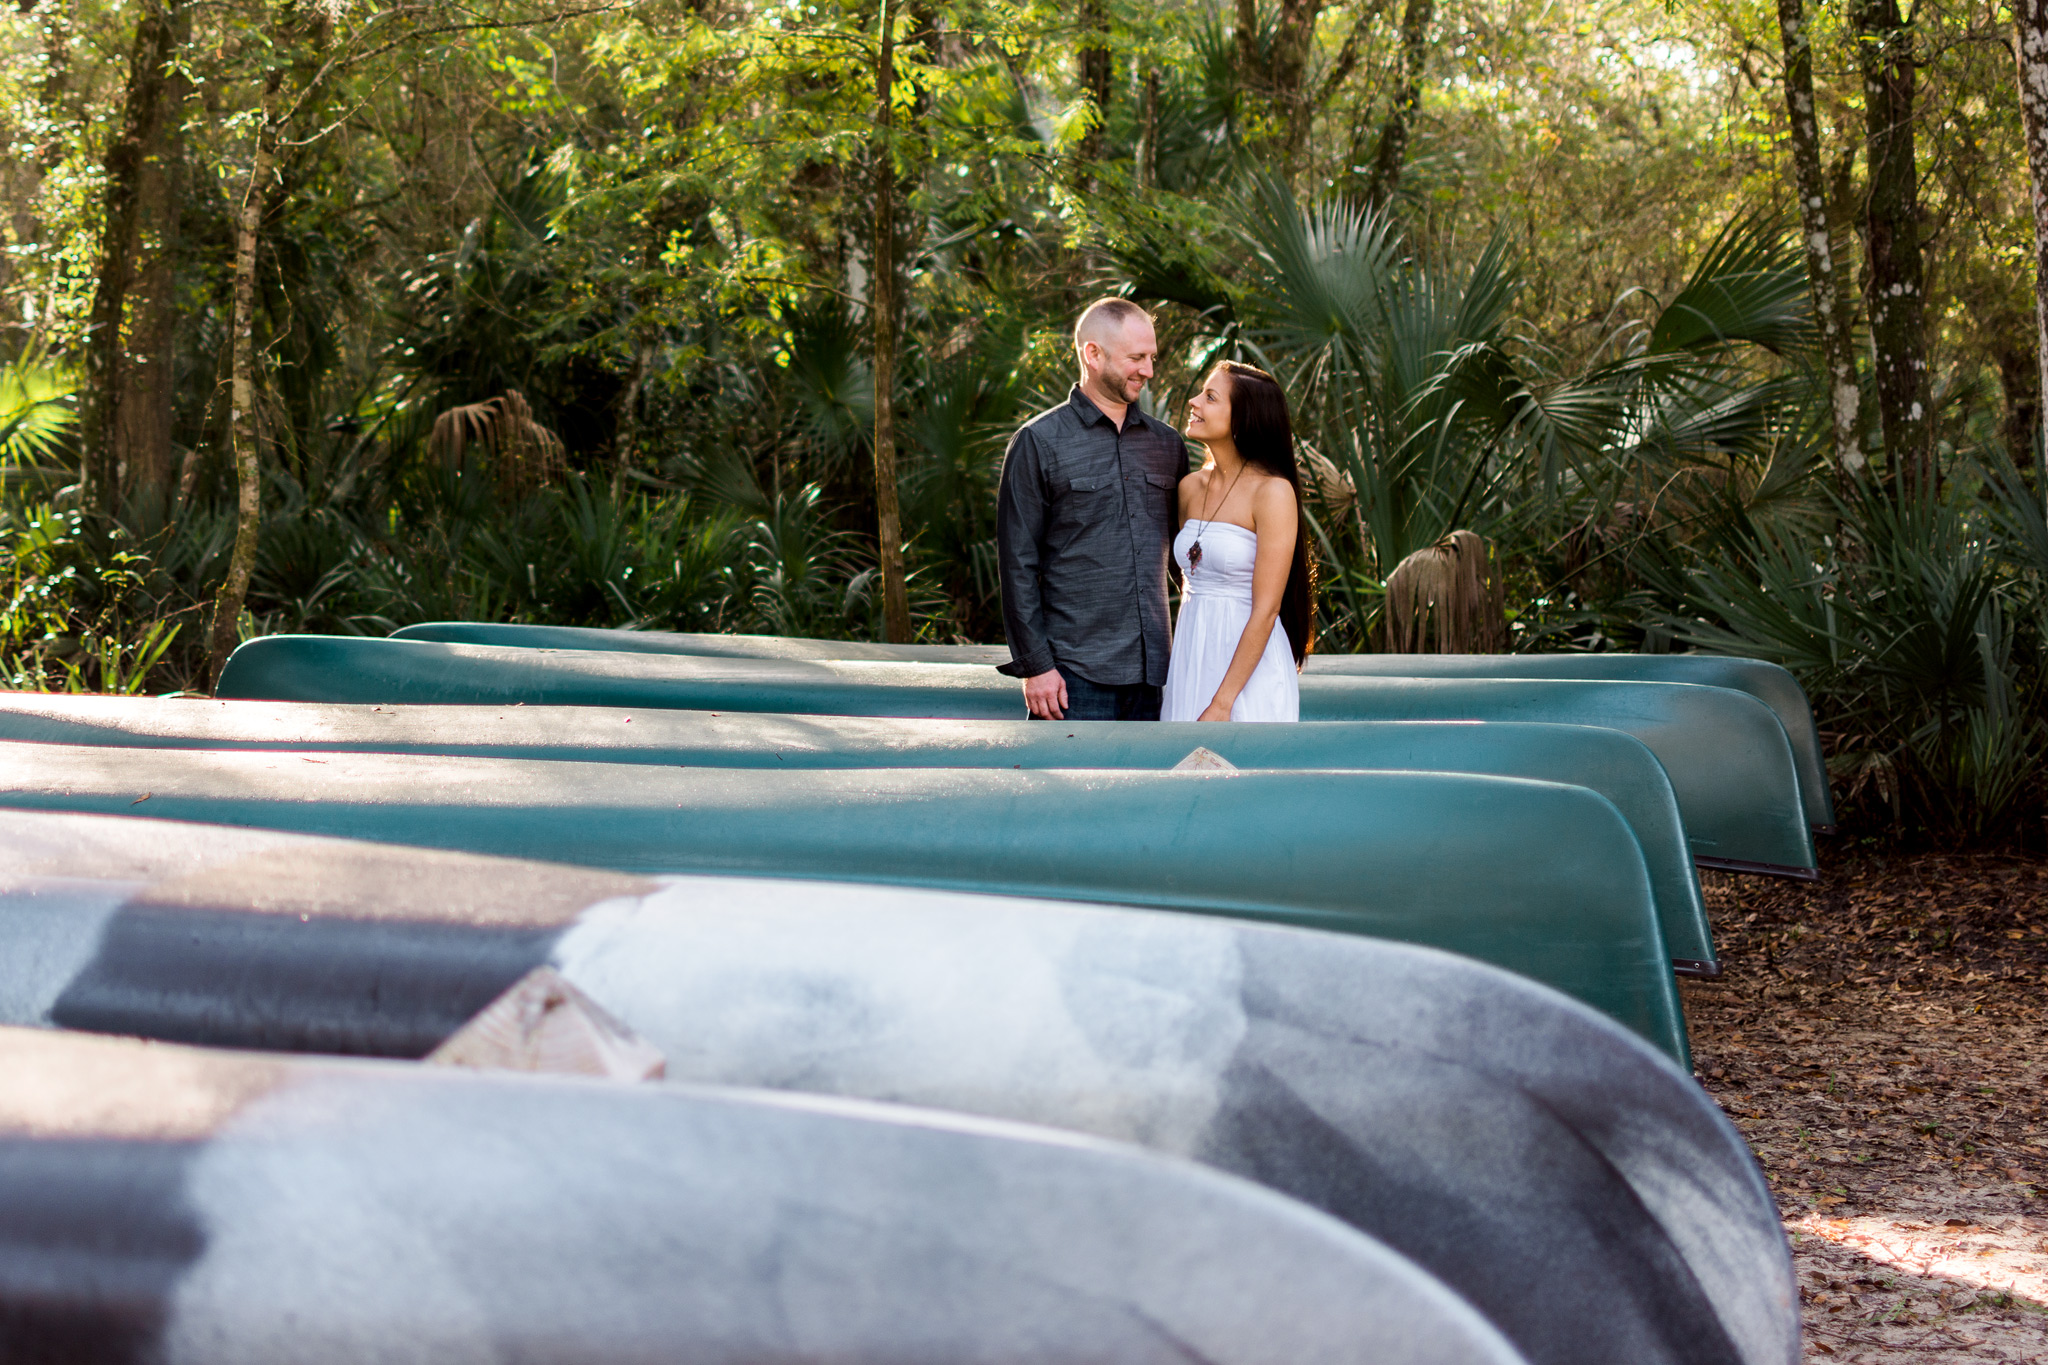 Carlie Chew Photography captures loving couples portrait surrounded by kayaks at Lettuce Lake Park, Tampa, Florida